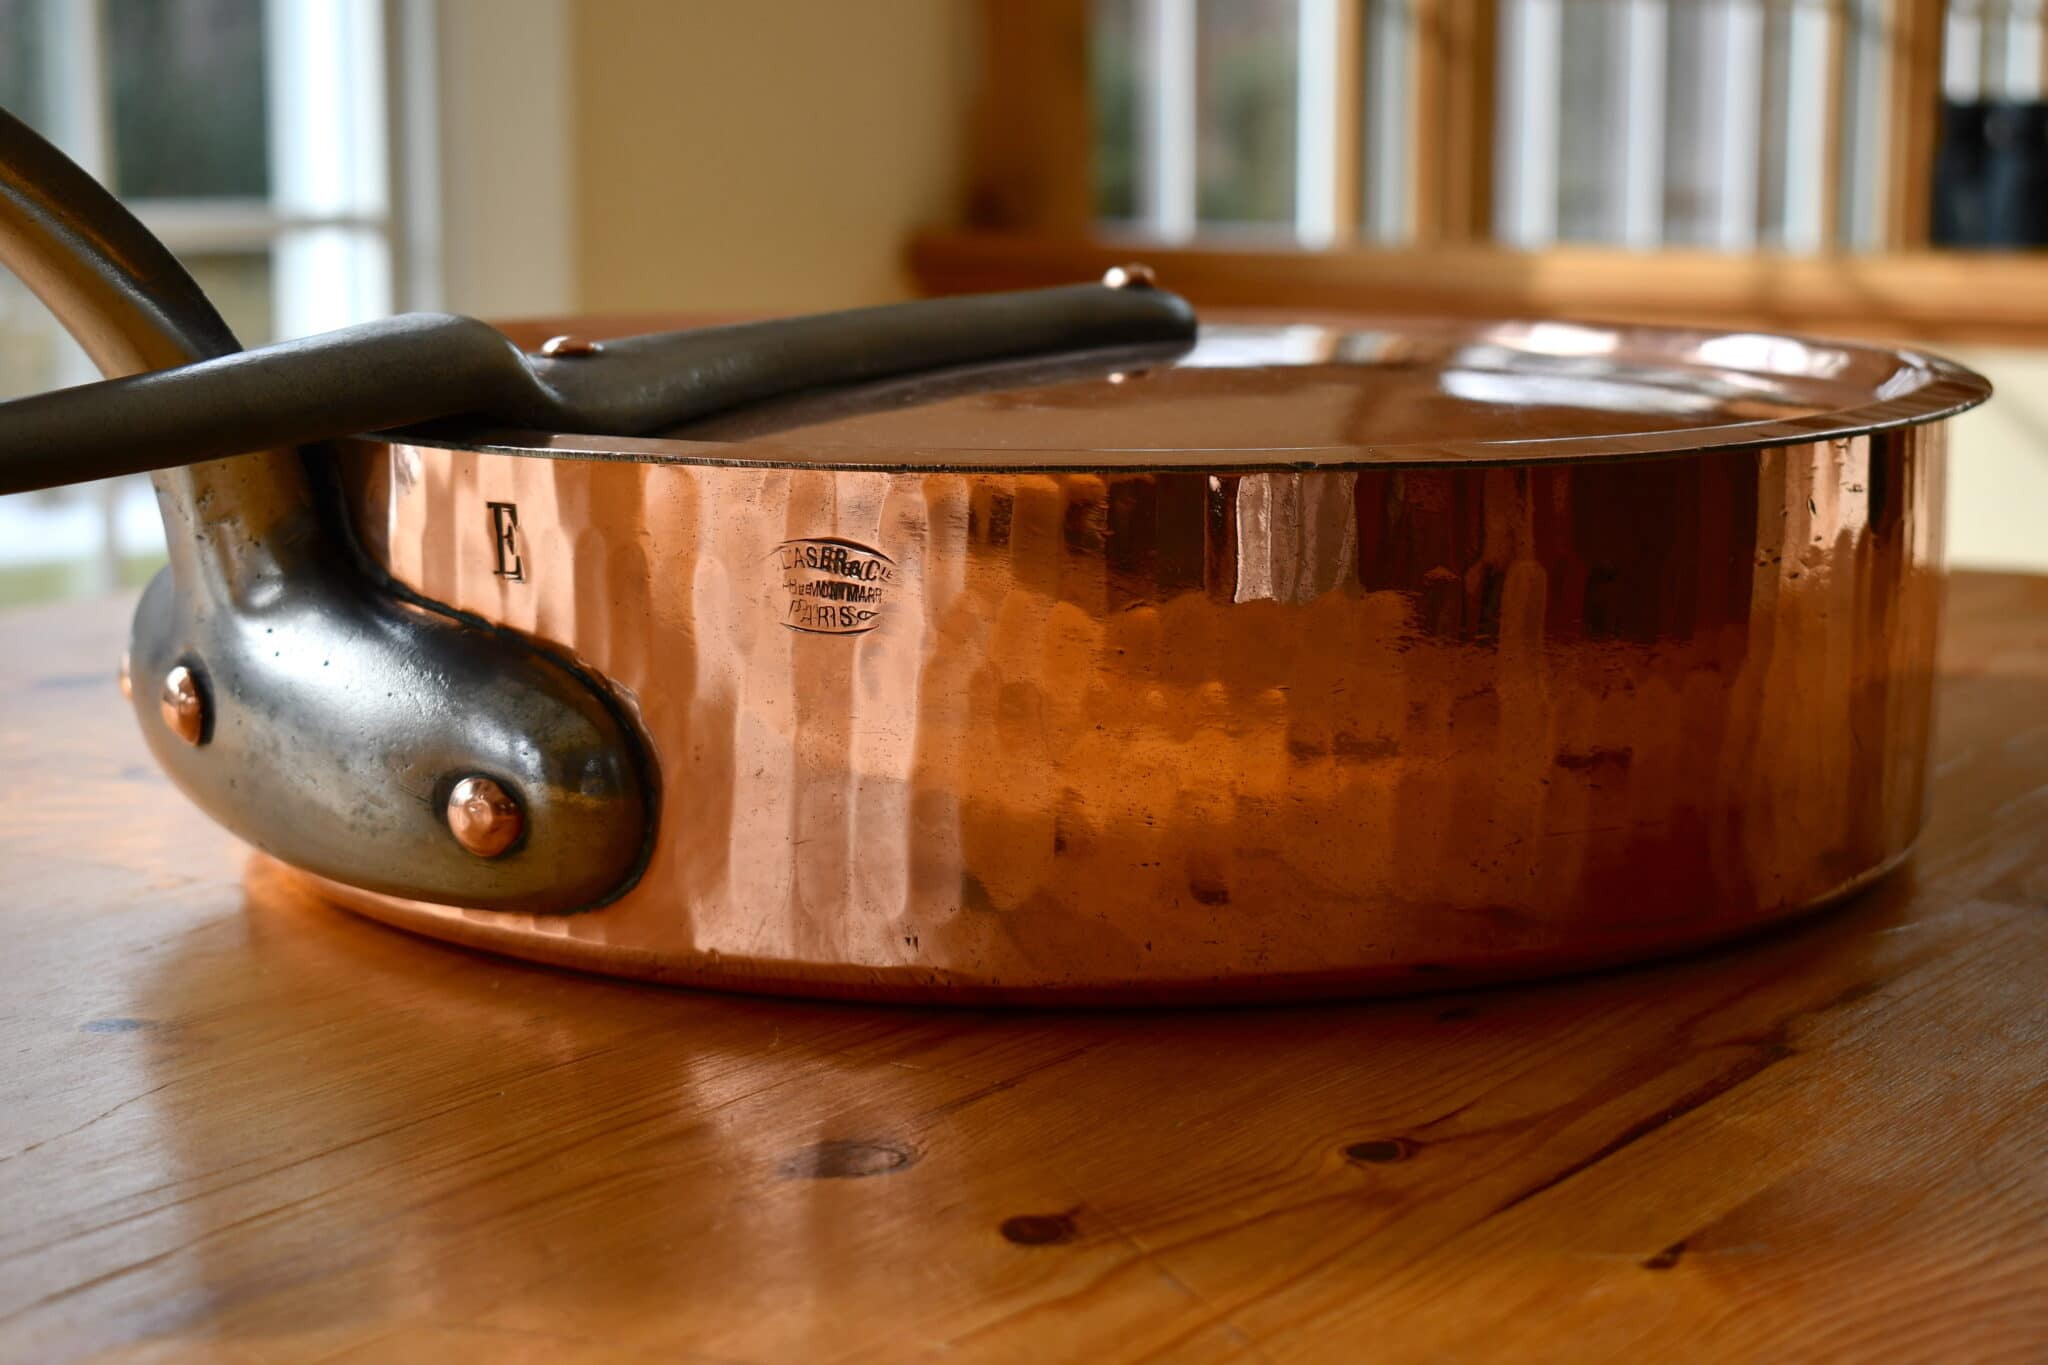 34cm sauté with fitted lid for Blaser et Cie